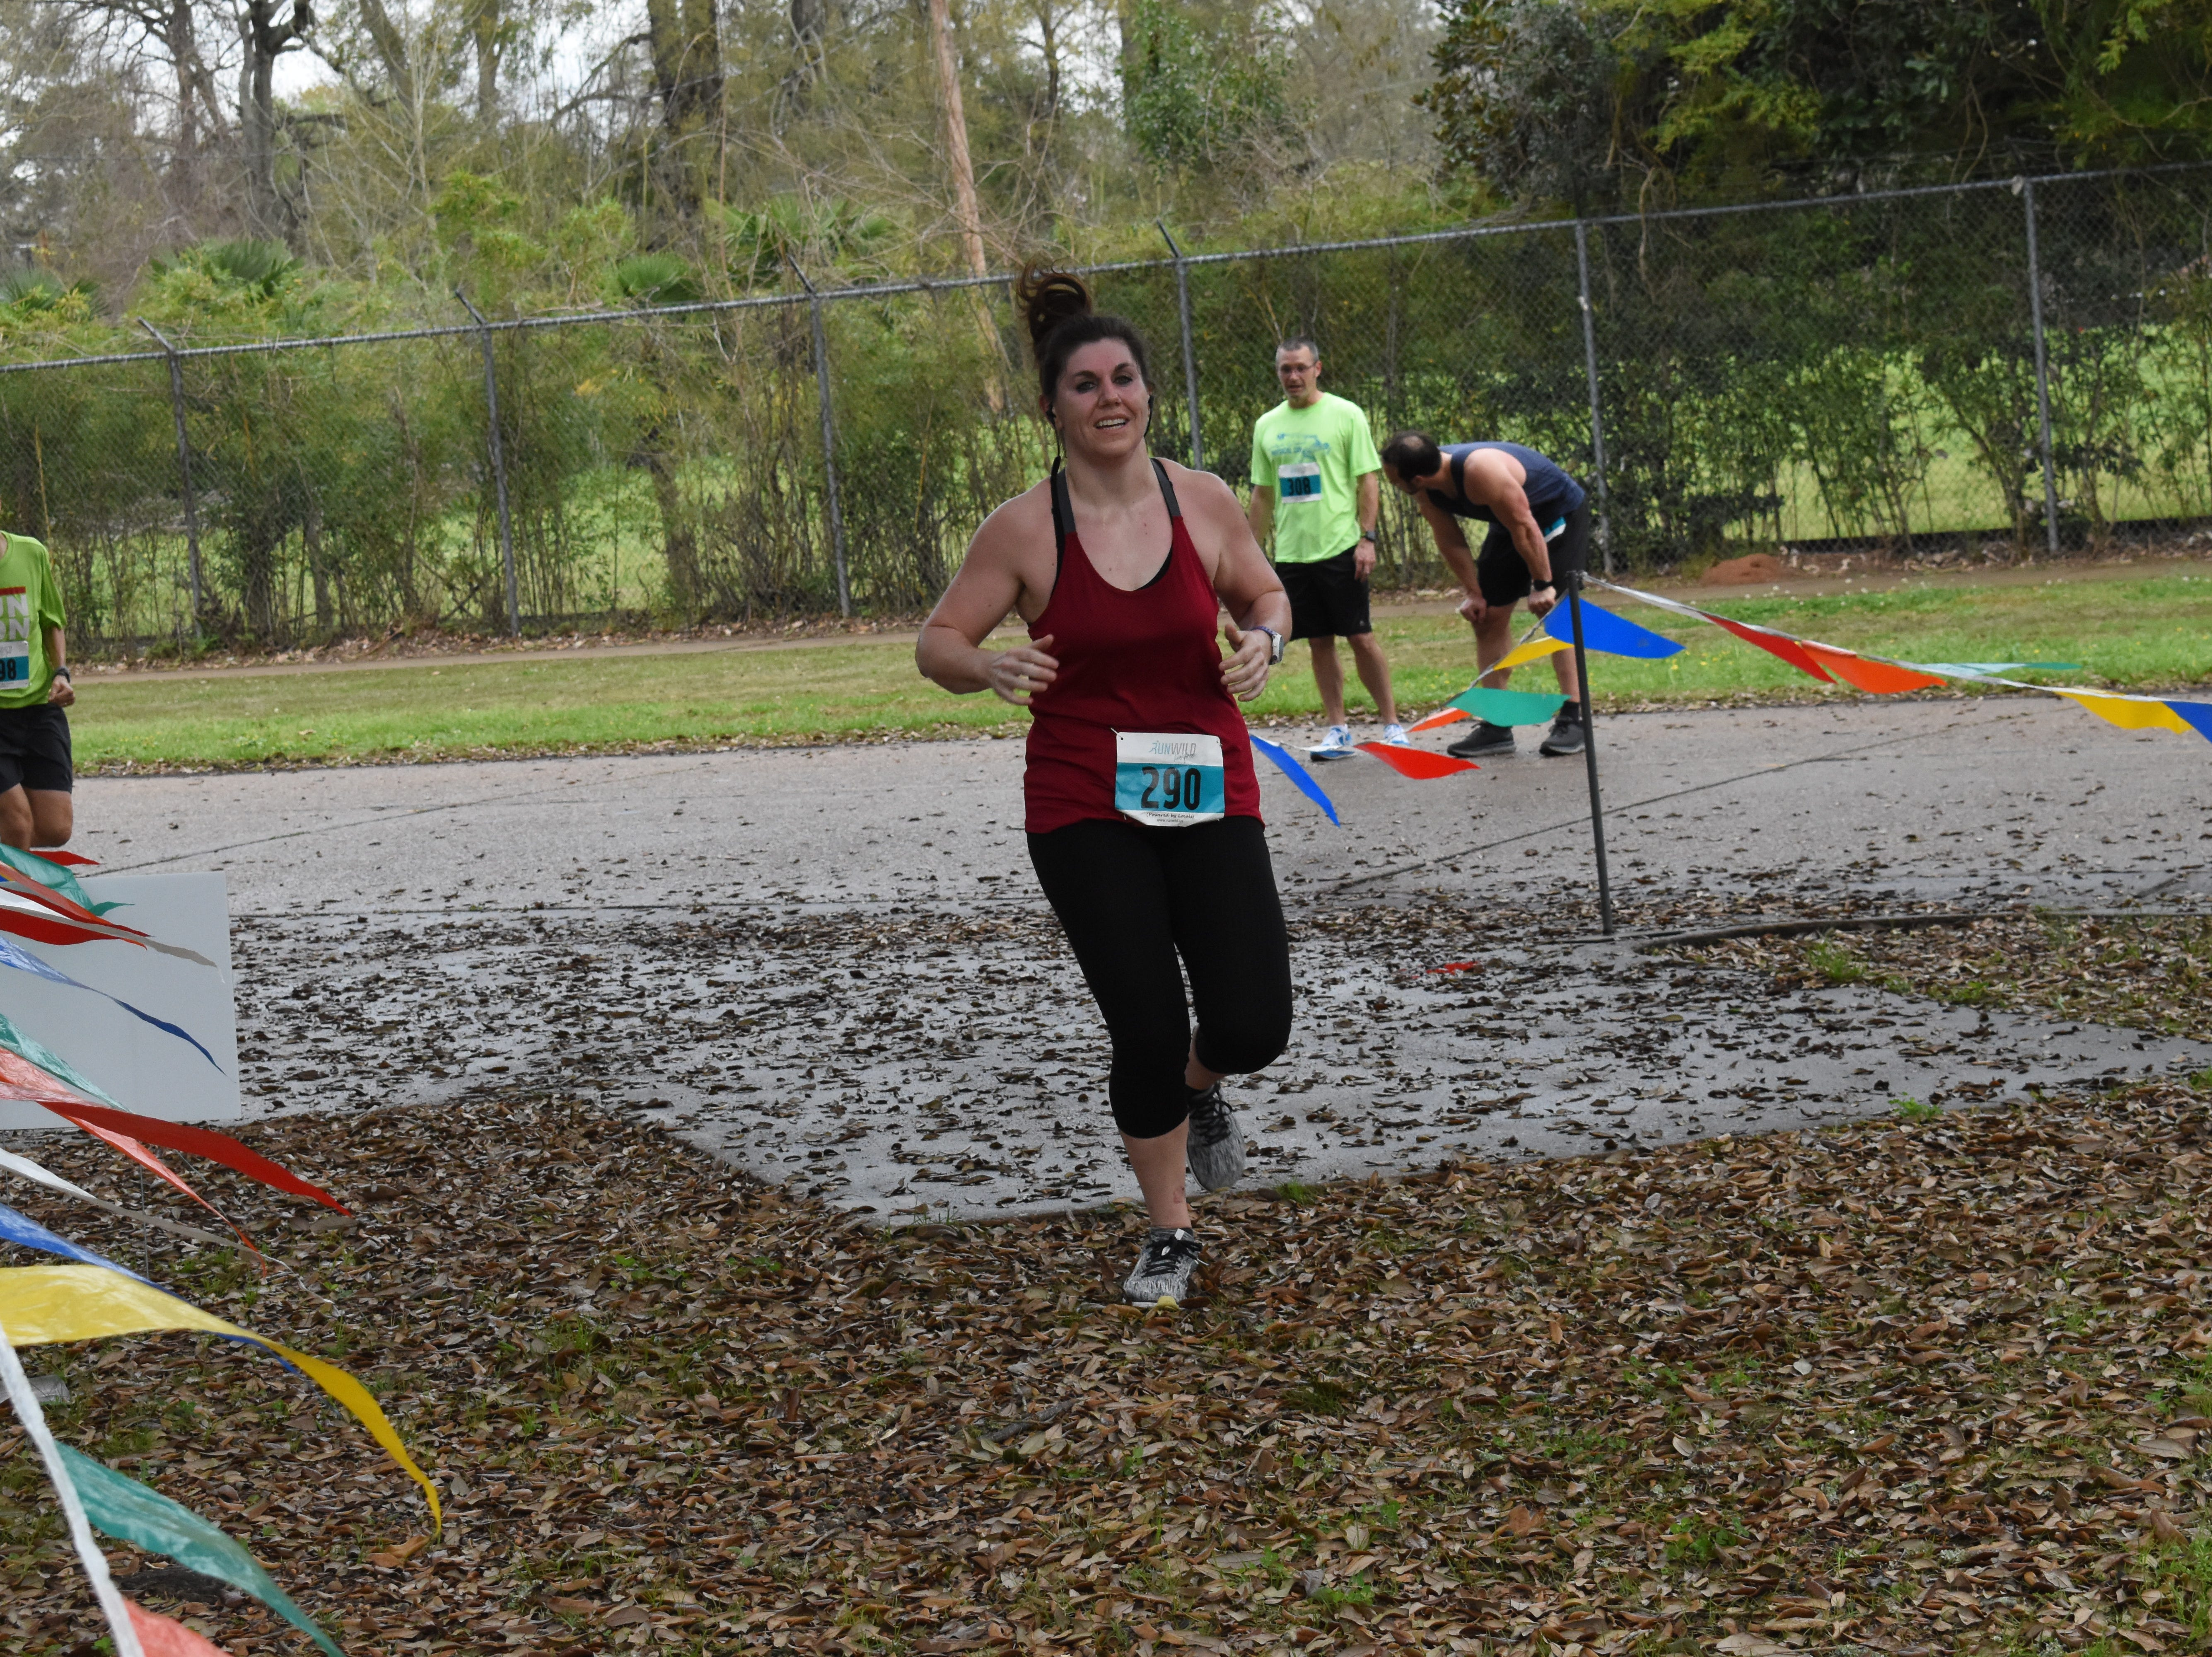 Over 170 runners and participated in the 21st annual Red River Run10K and 1-mile Fun Run held Saturday, March 9, 2019. The six-mile run took runners from the Big Island on Babe Ruth Drive to downtown Alexandria and back to Big Island. Runners and walkers in the 1-mile Fun Run made two loops around the area near Big Island. John Dean placed first with a time of 37:58.7. Trevor Gayten placed second with 38:30.6 and Zachary Luneau placed third with a time of 38:54.5